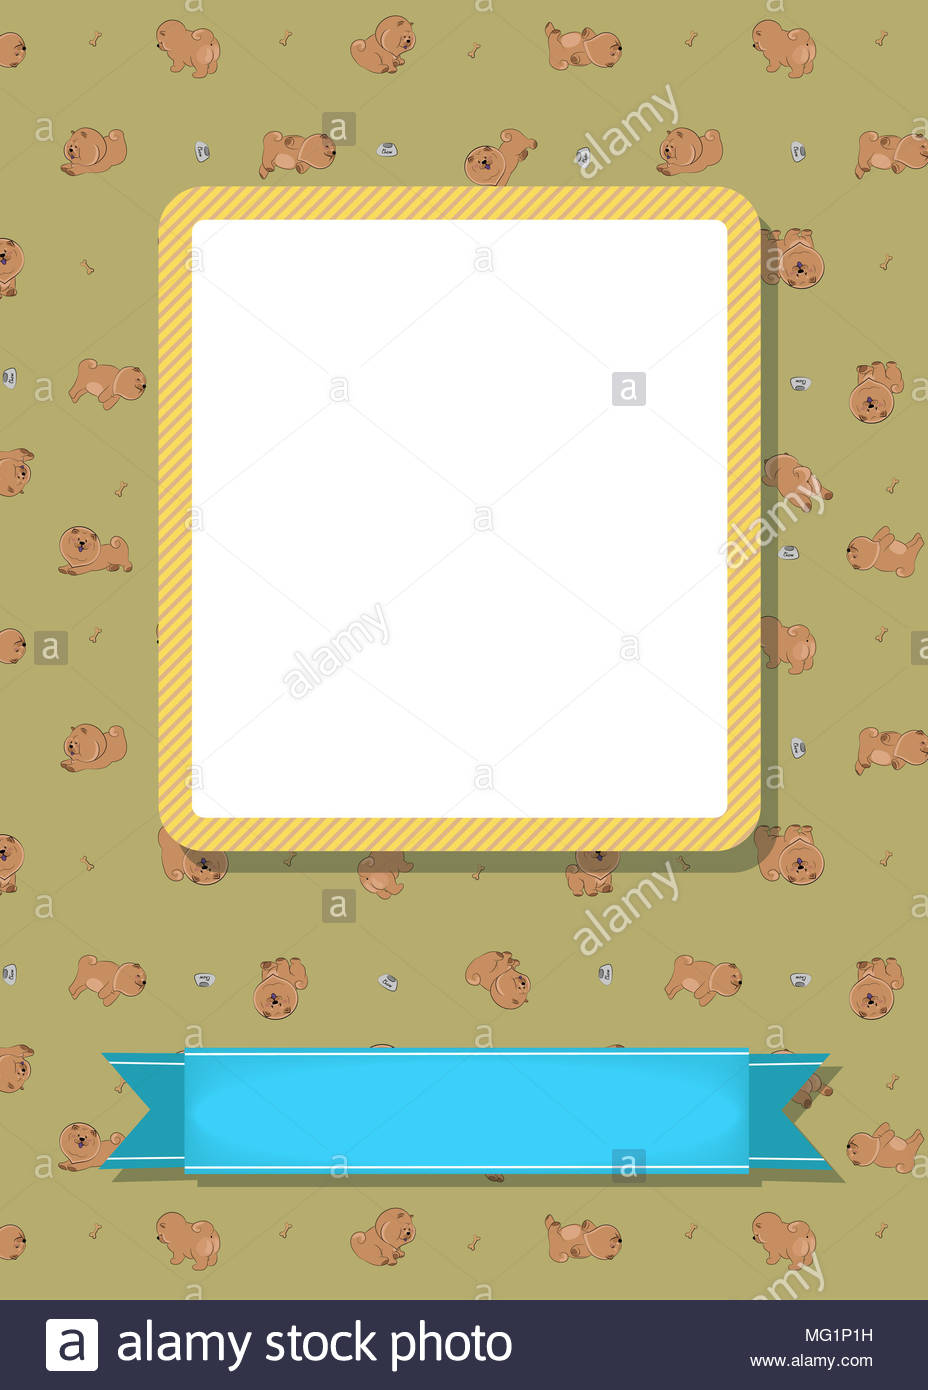 Funny Greeting Card Cartoon Brown Dogs Chow Chow Yellow Frame For